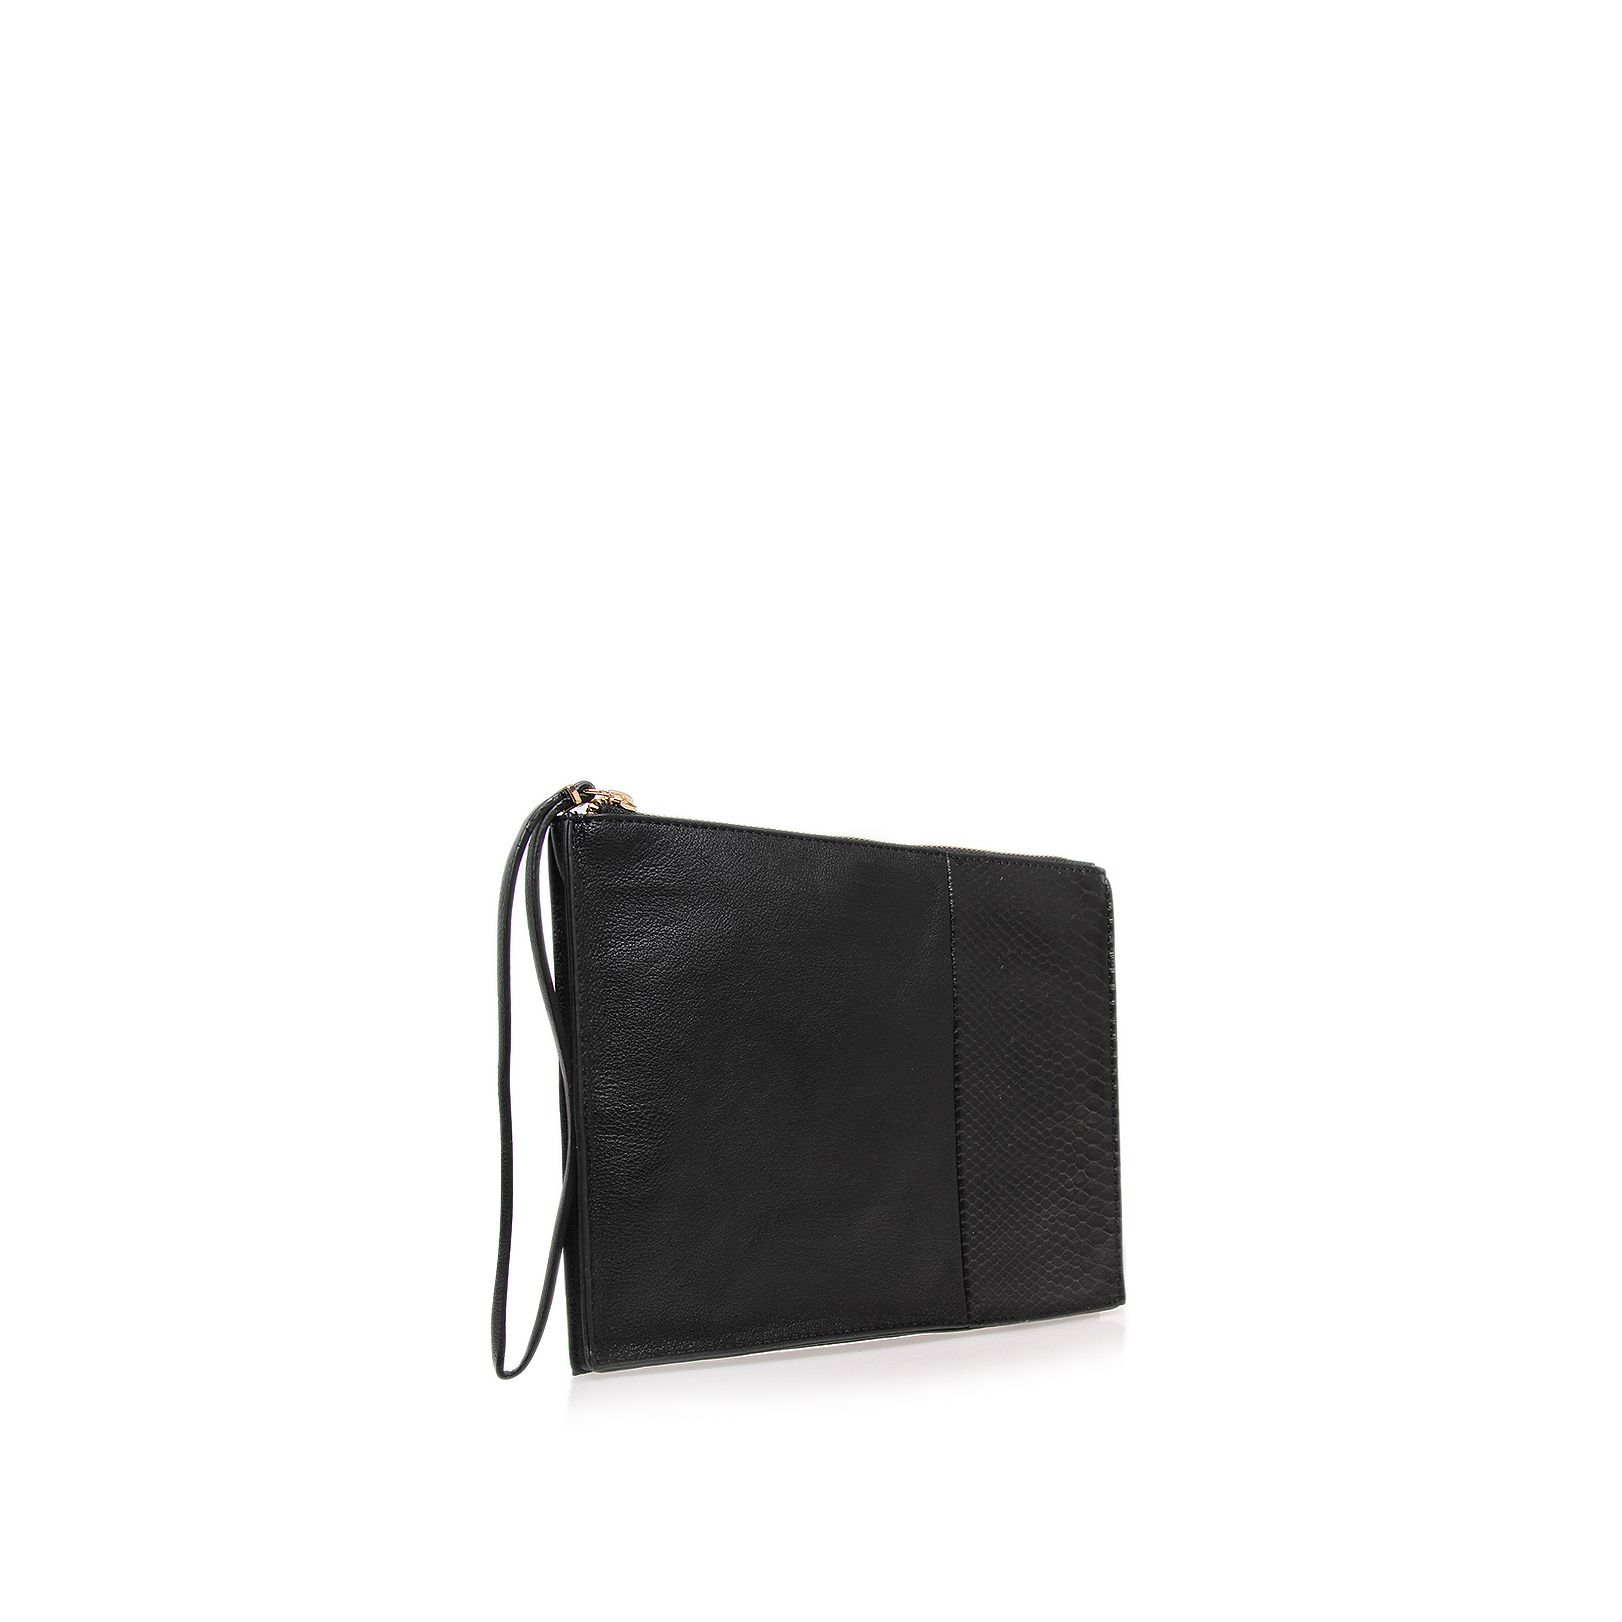 Toni black clutch bag